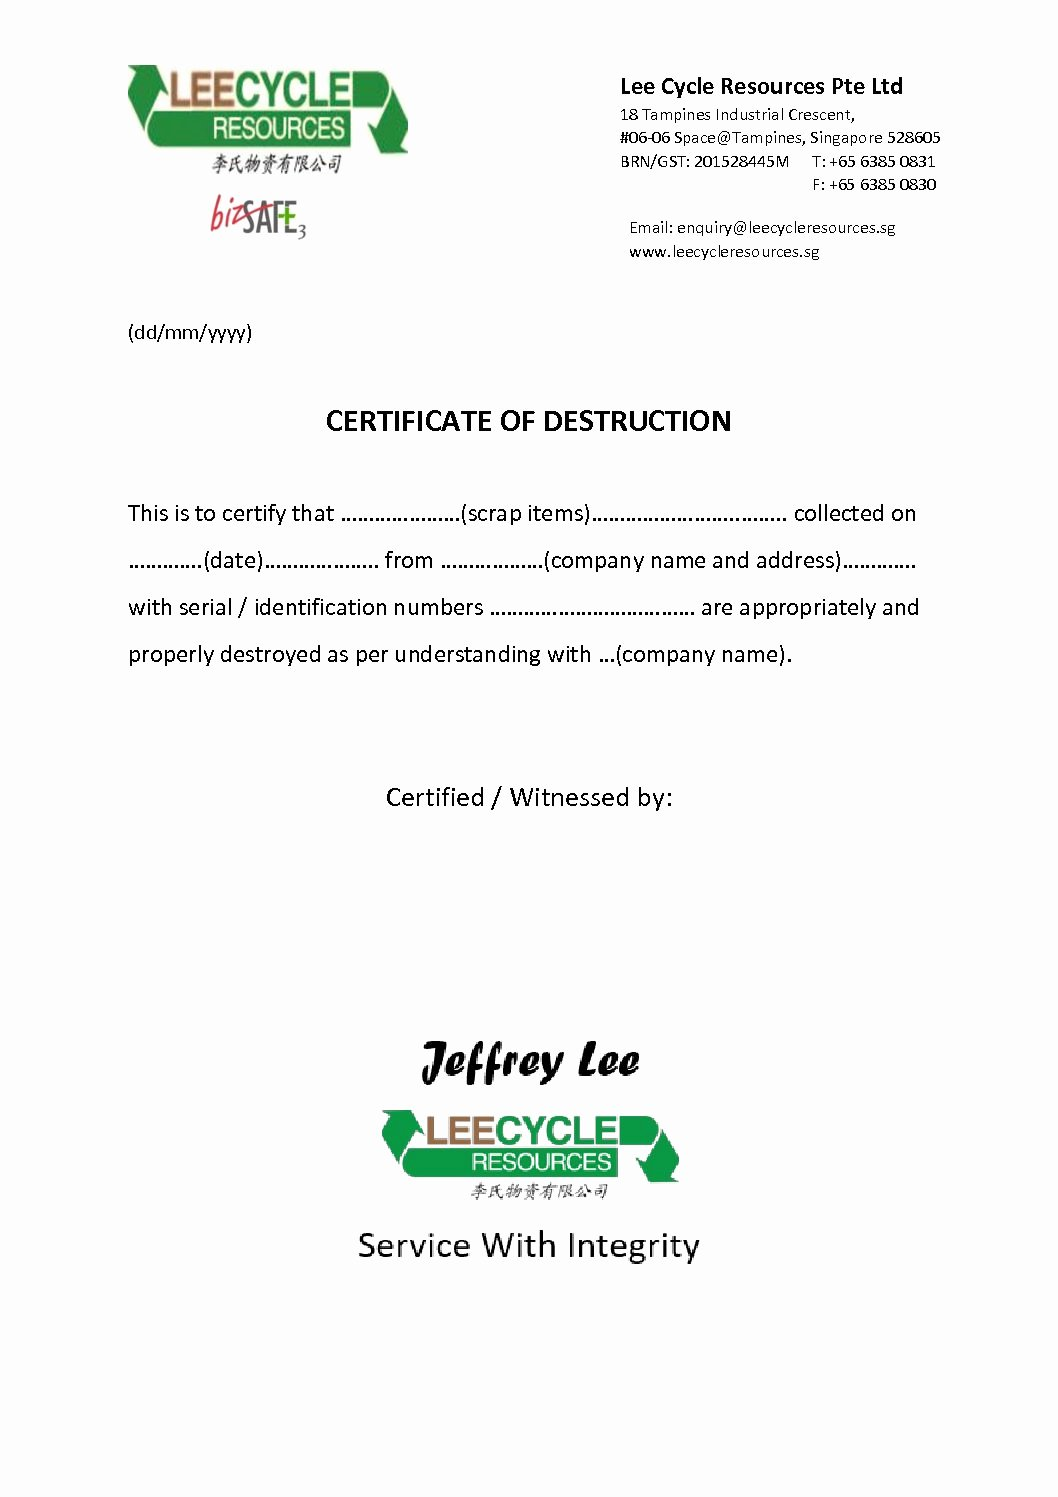 Certificate Of Destruction Template Best Of Certificate Destruction Leecycle Resources Singapore